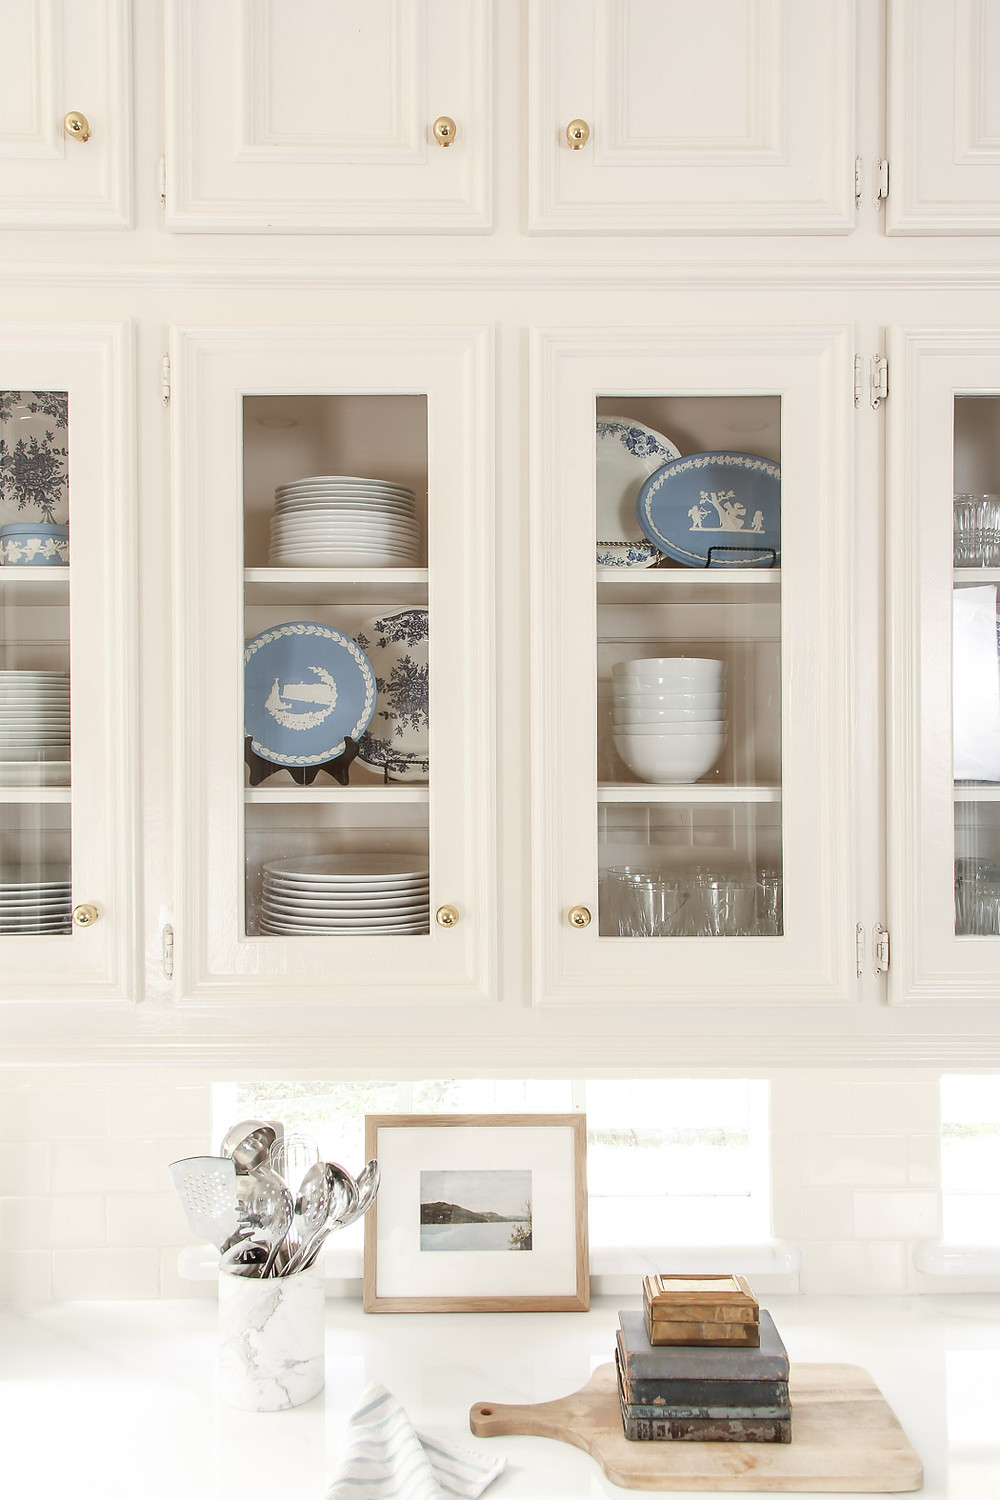 white and blue kitchen inspiration, wedgewood, white and blue plates